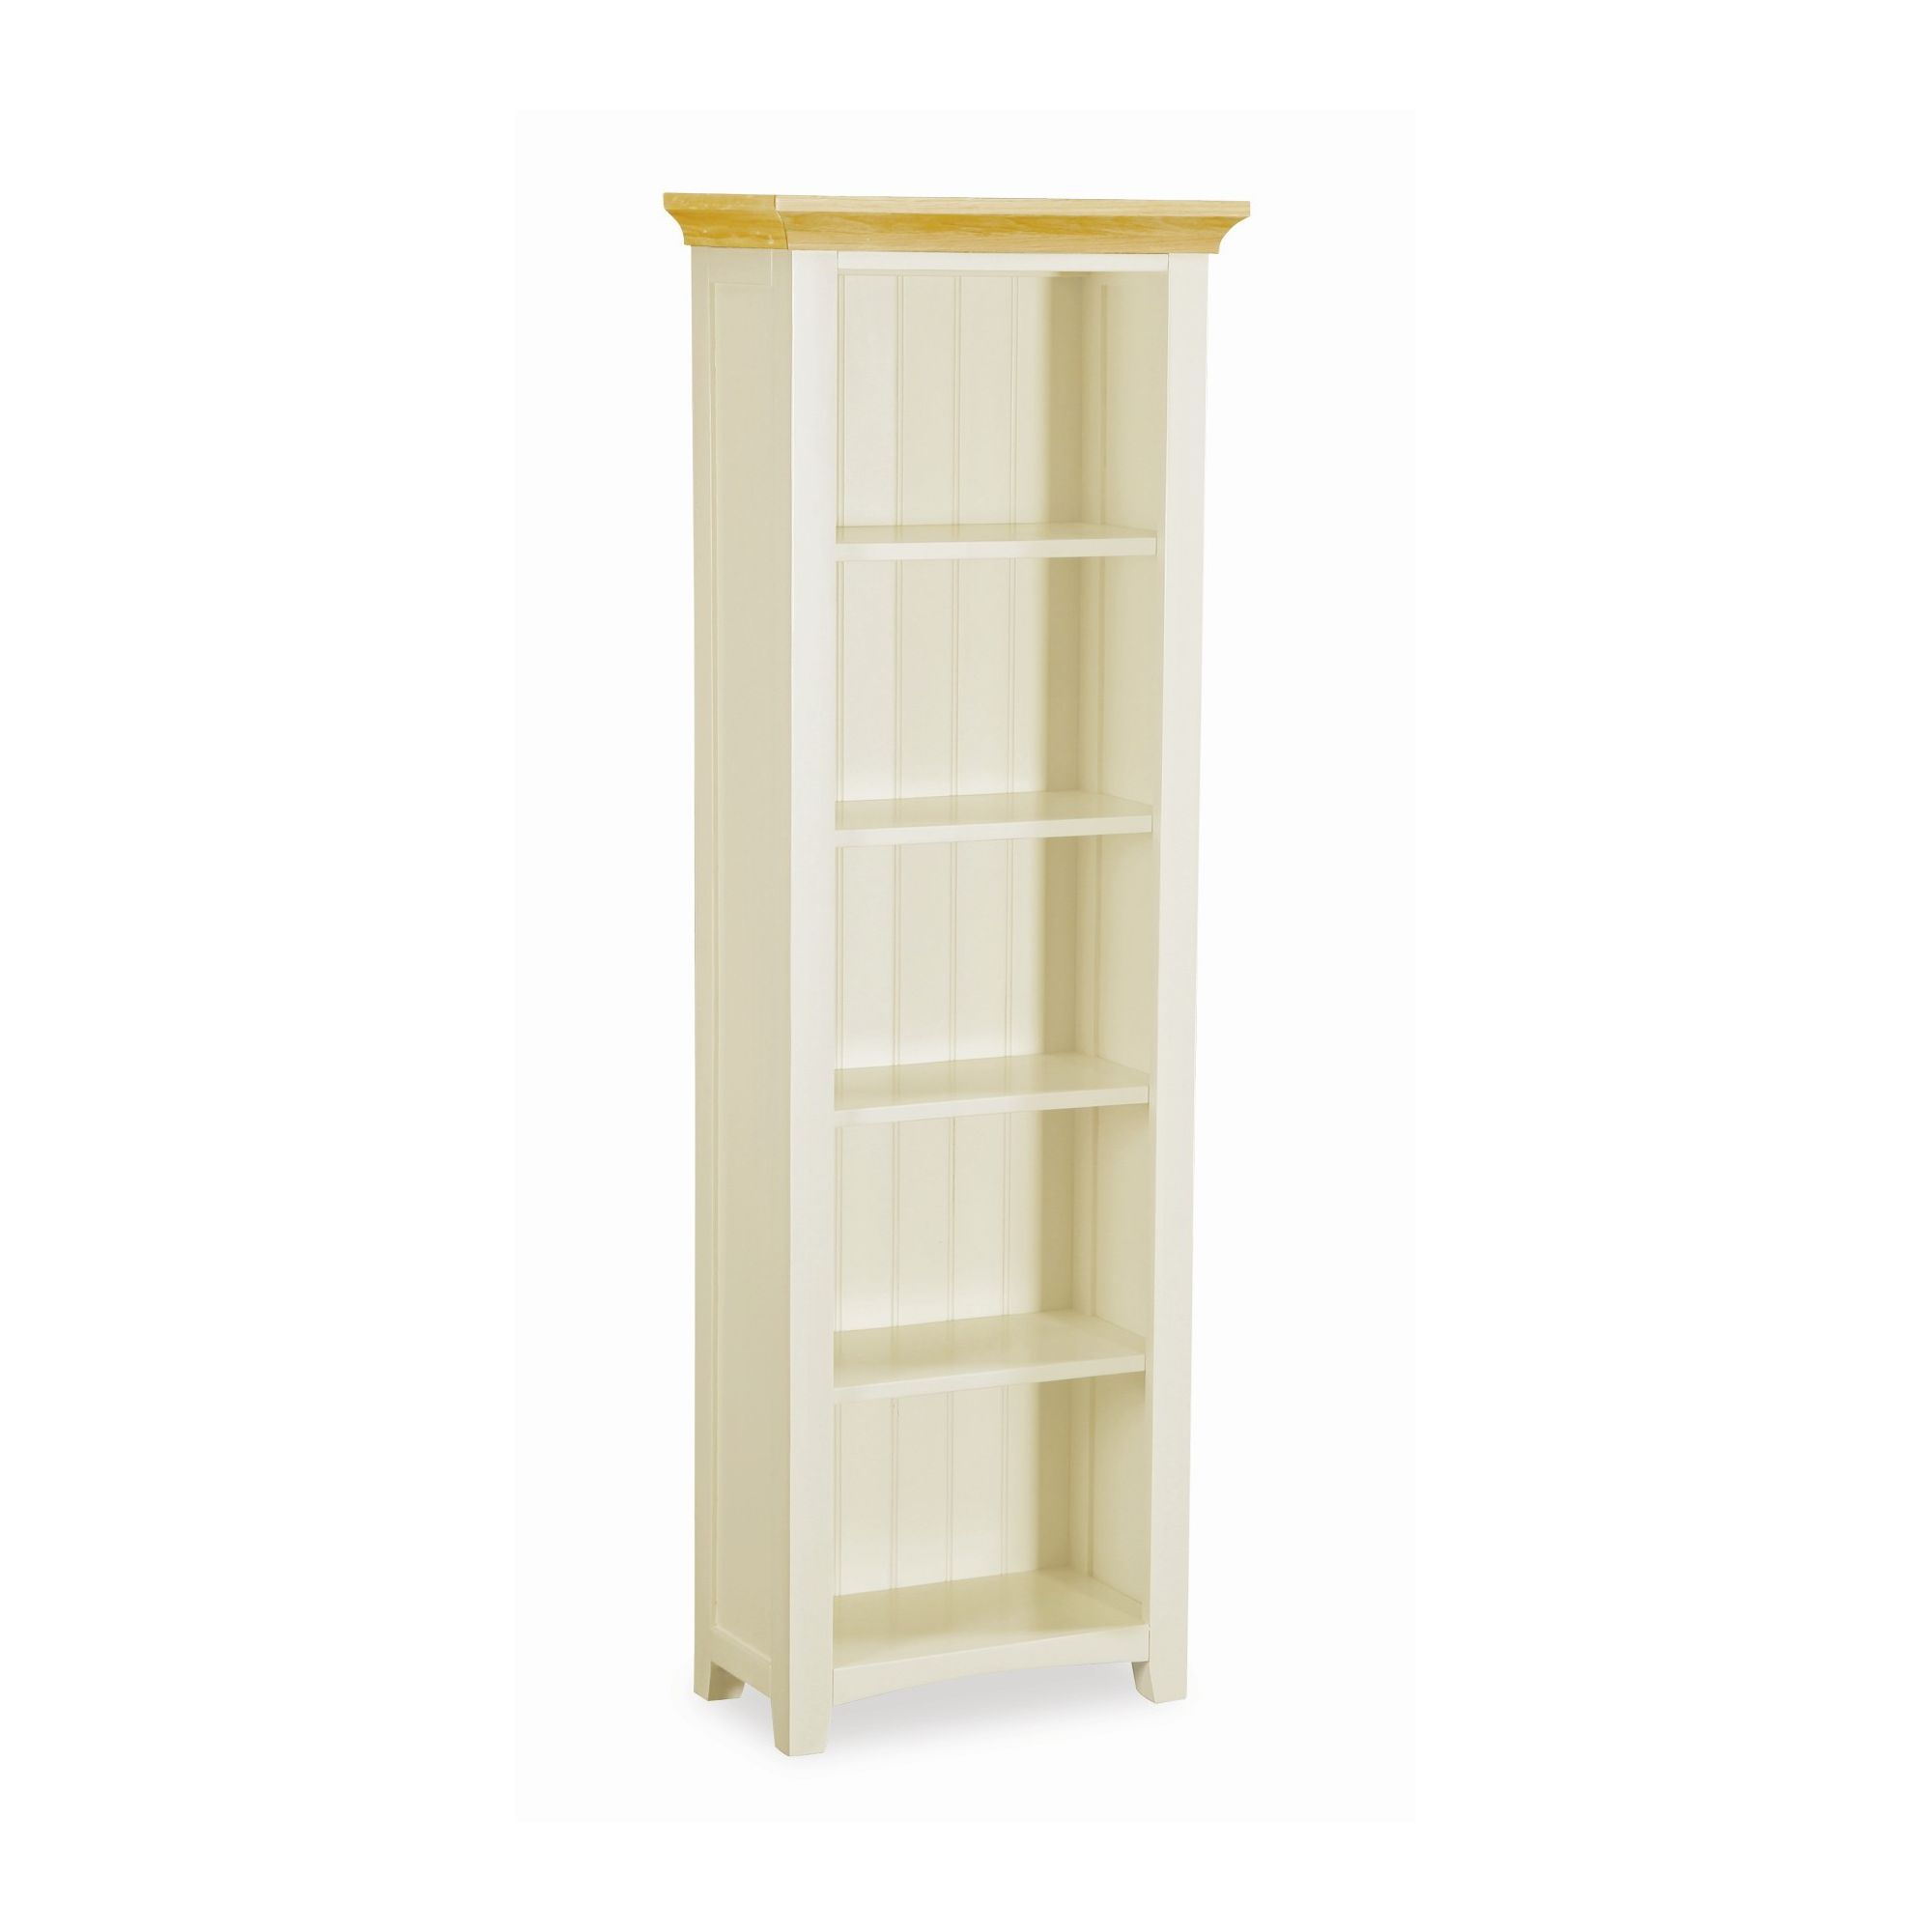 Alterton Furniture Slim St. Ives Bookcase at Tesco Direct